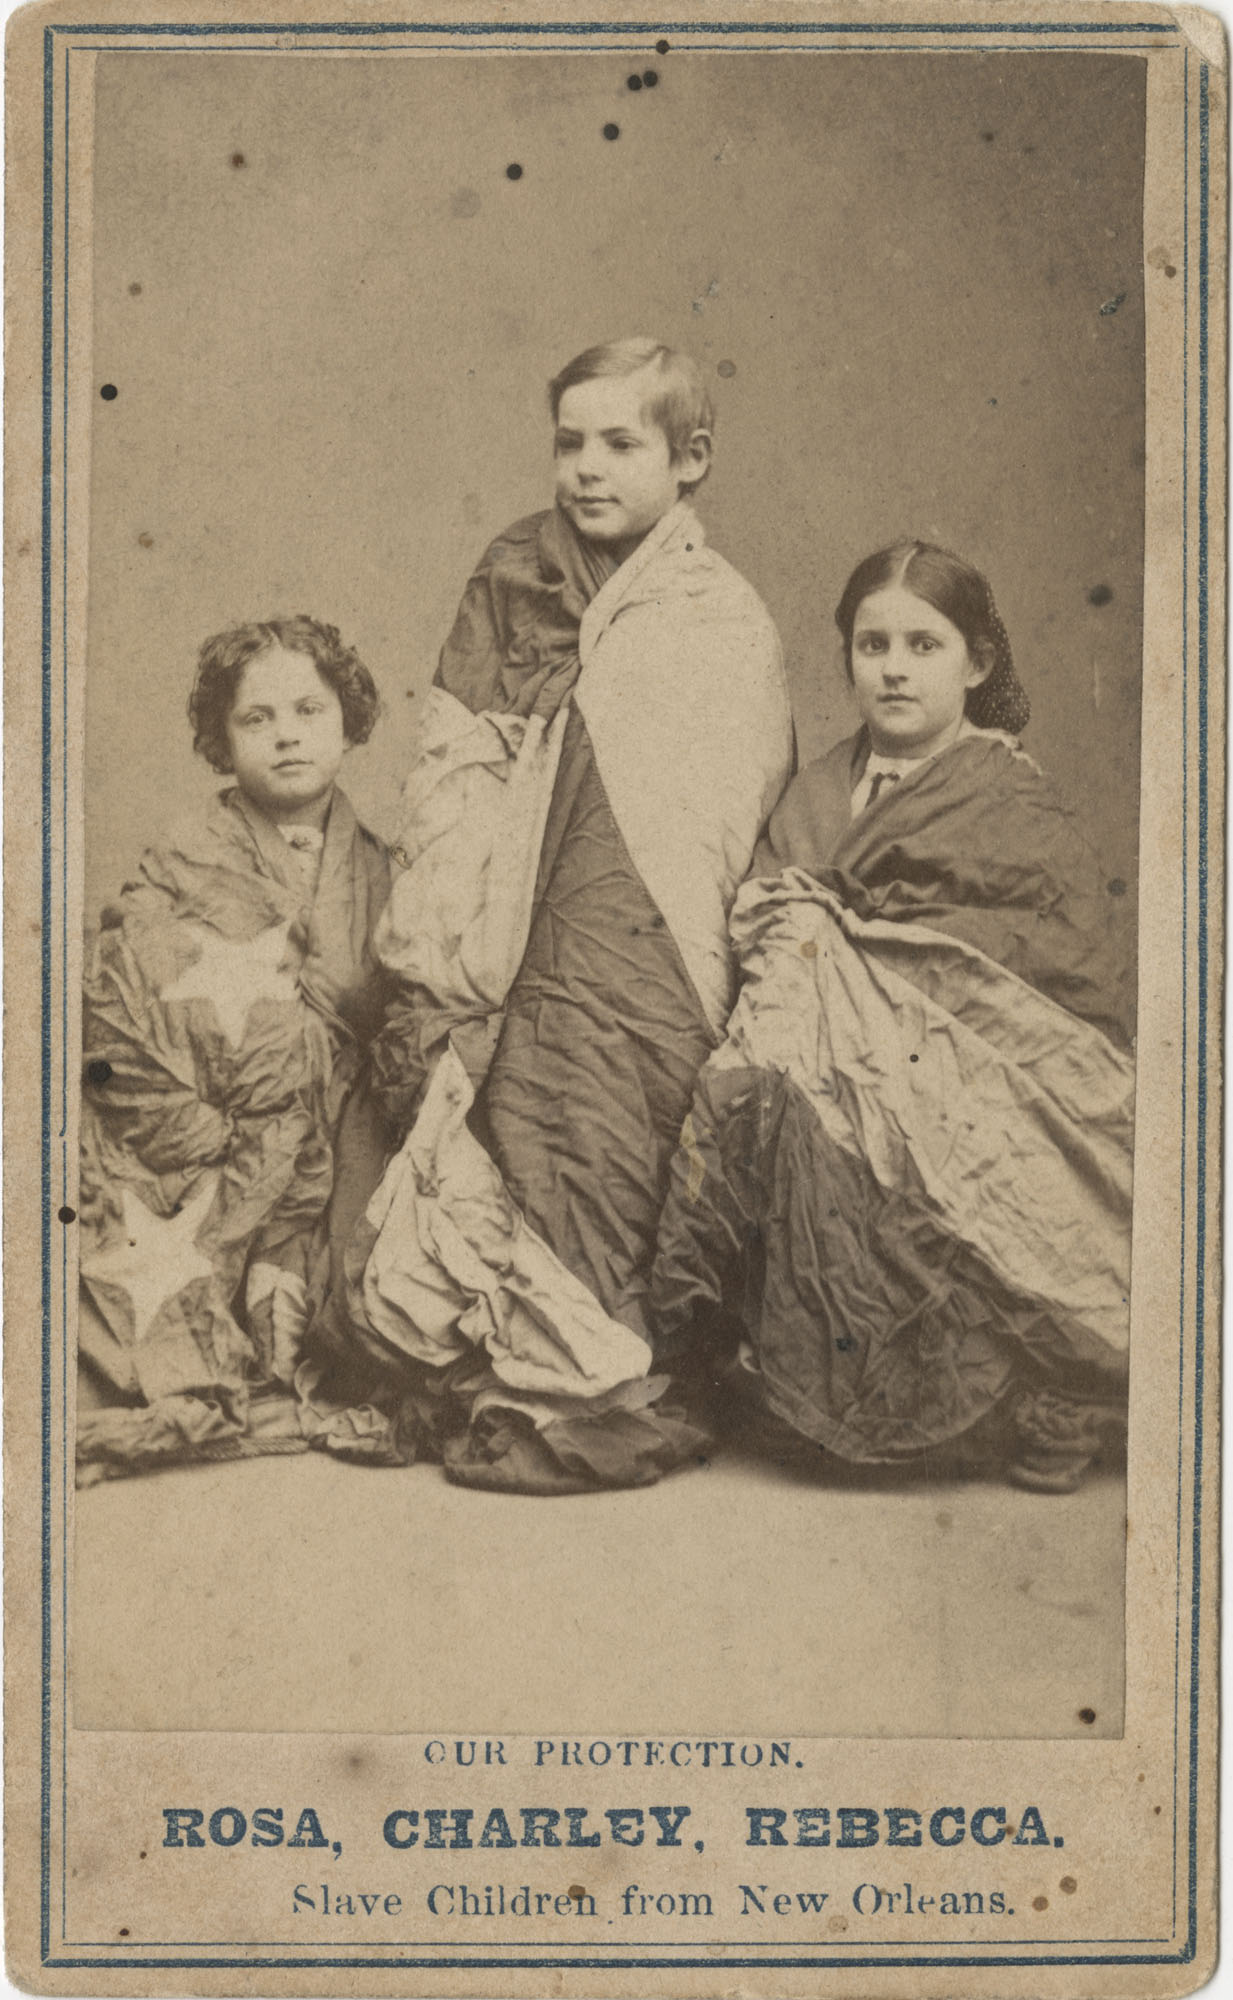 Our Protection. Rosa, Charley, Rebecca. Slave Children from New Orleans.